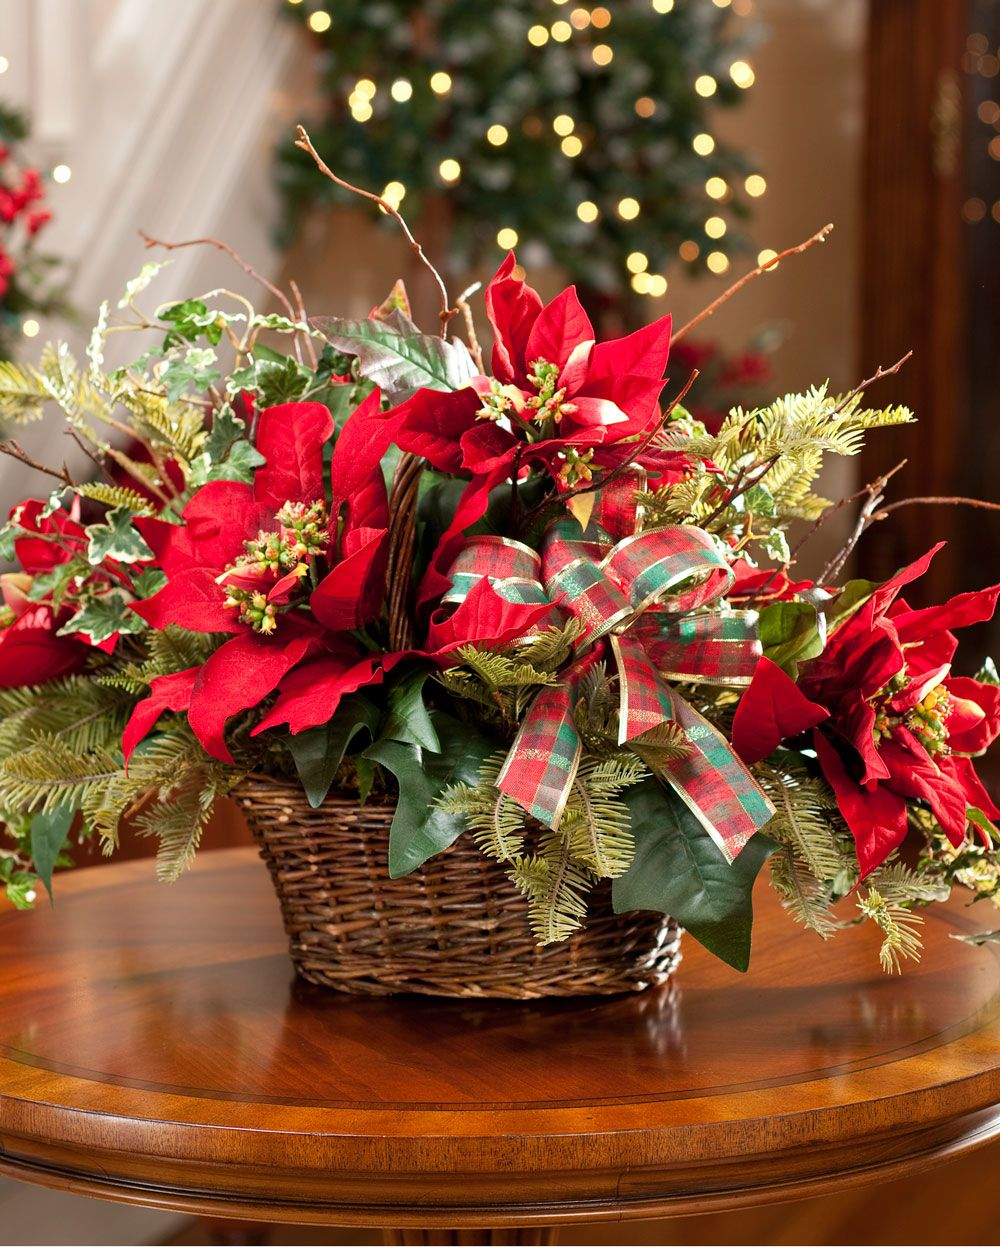 Poinsettia and Evergreen Silk Centerpiece for Holiday and Christmas Decoration  Ideas